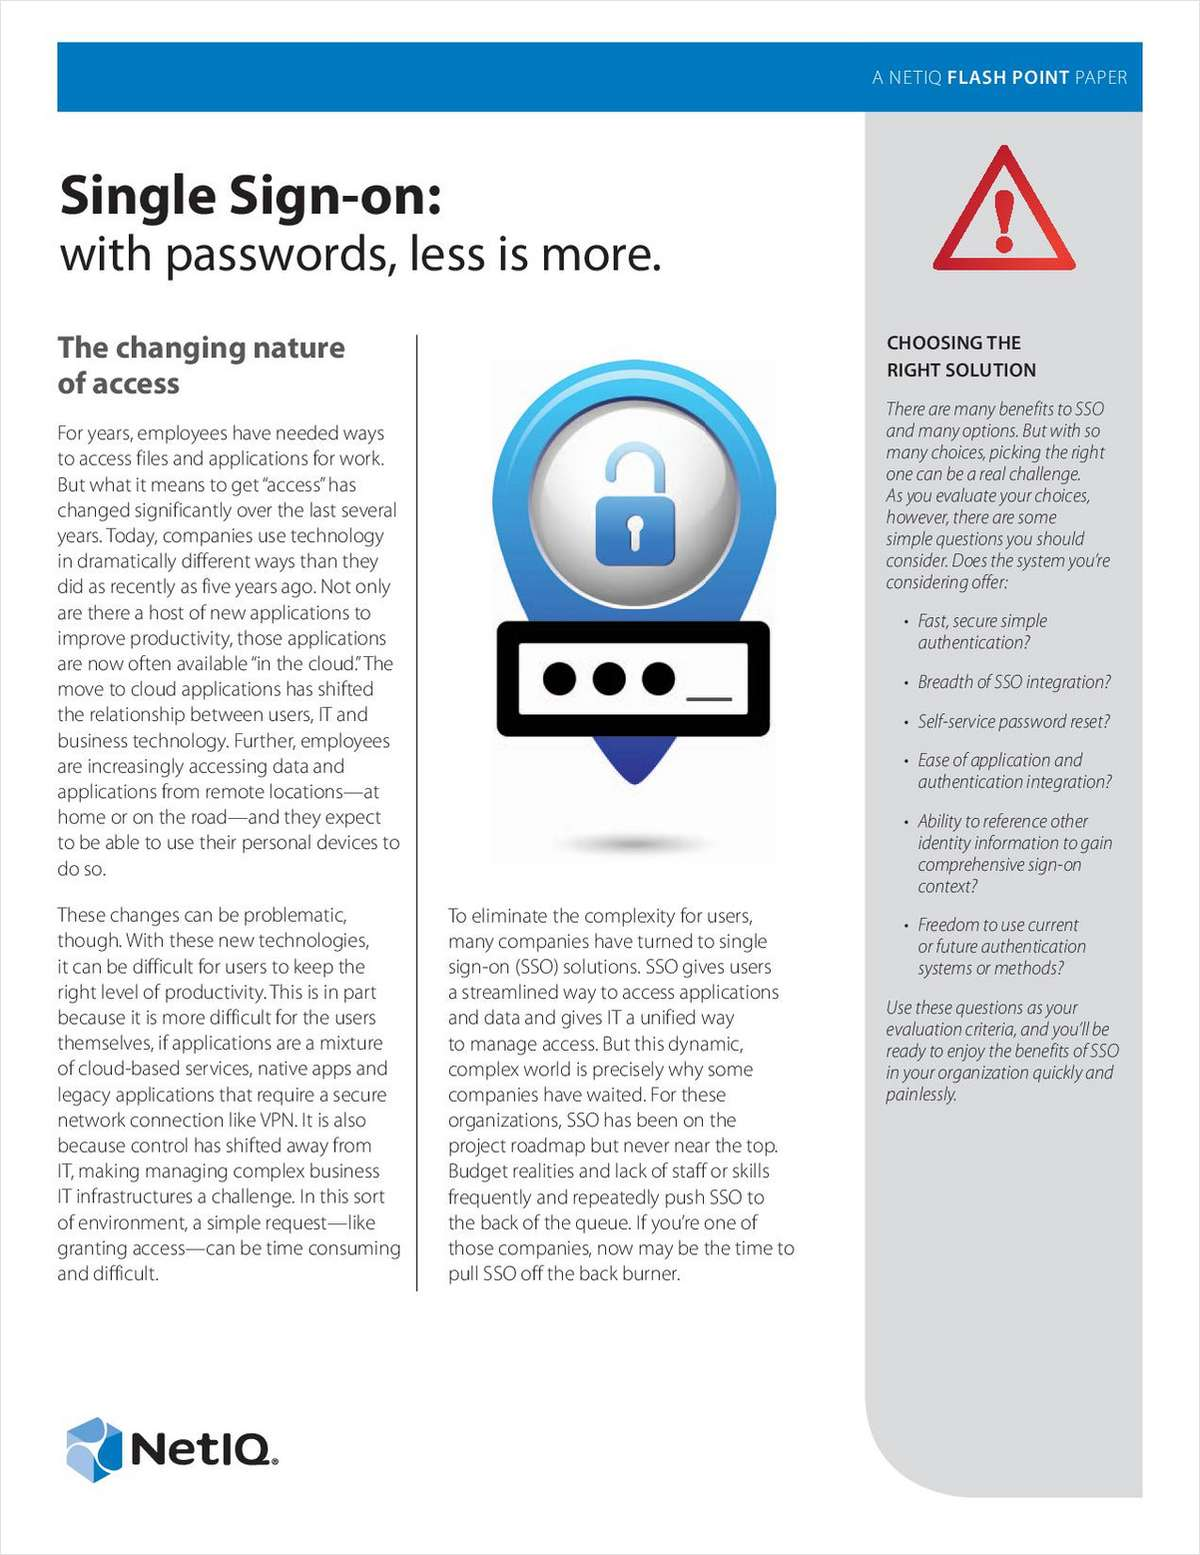 Single Sign-On: With Passwords, Less Is More